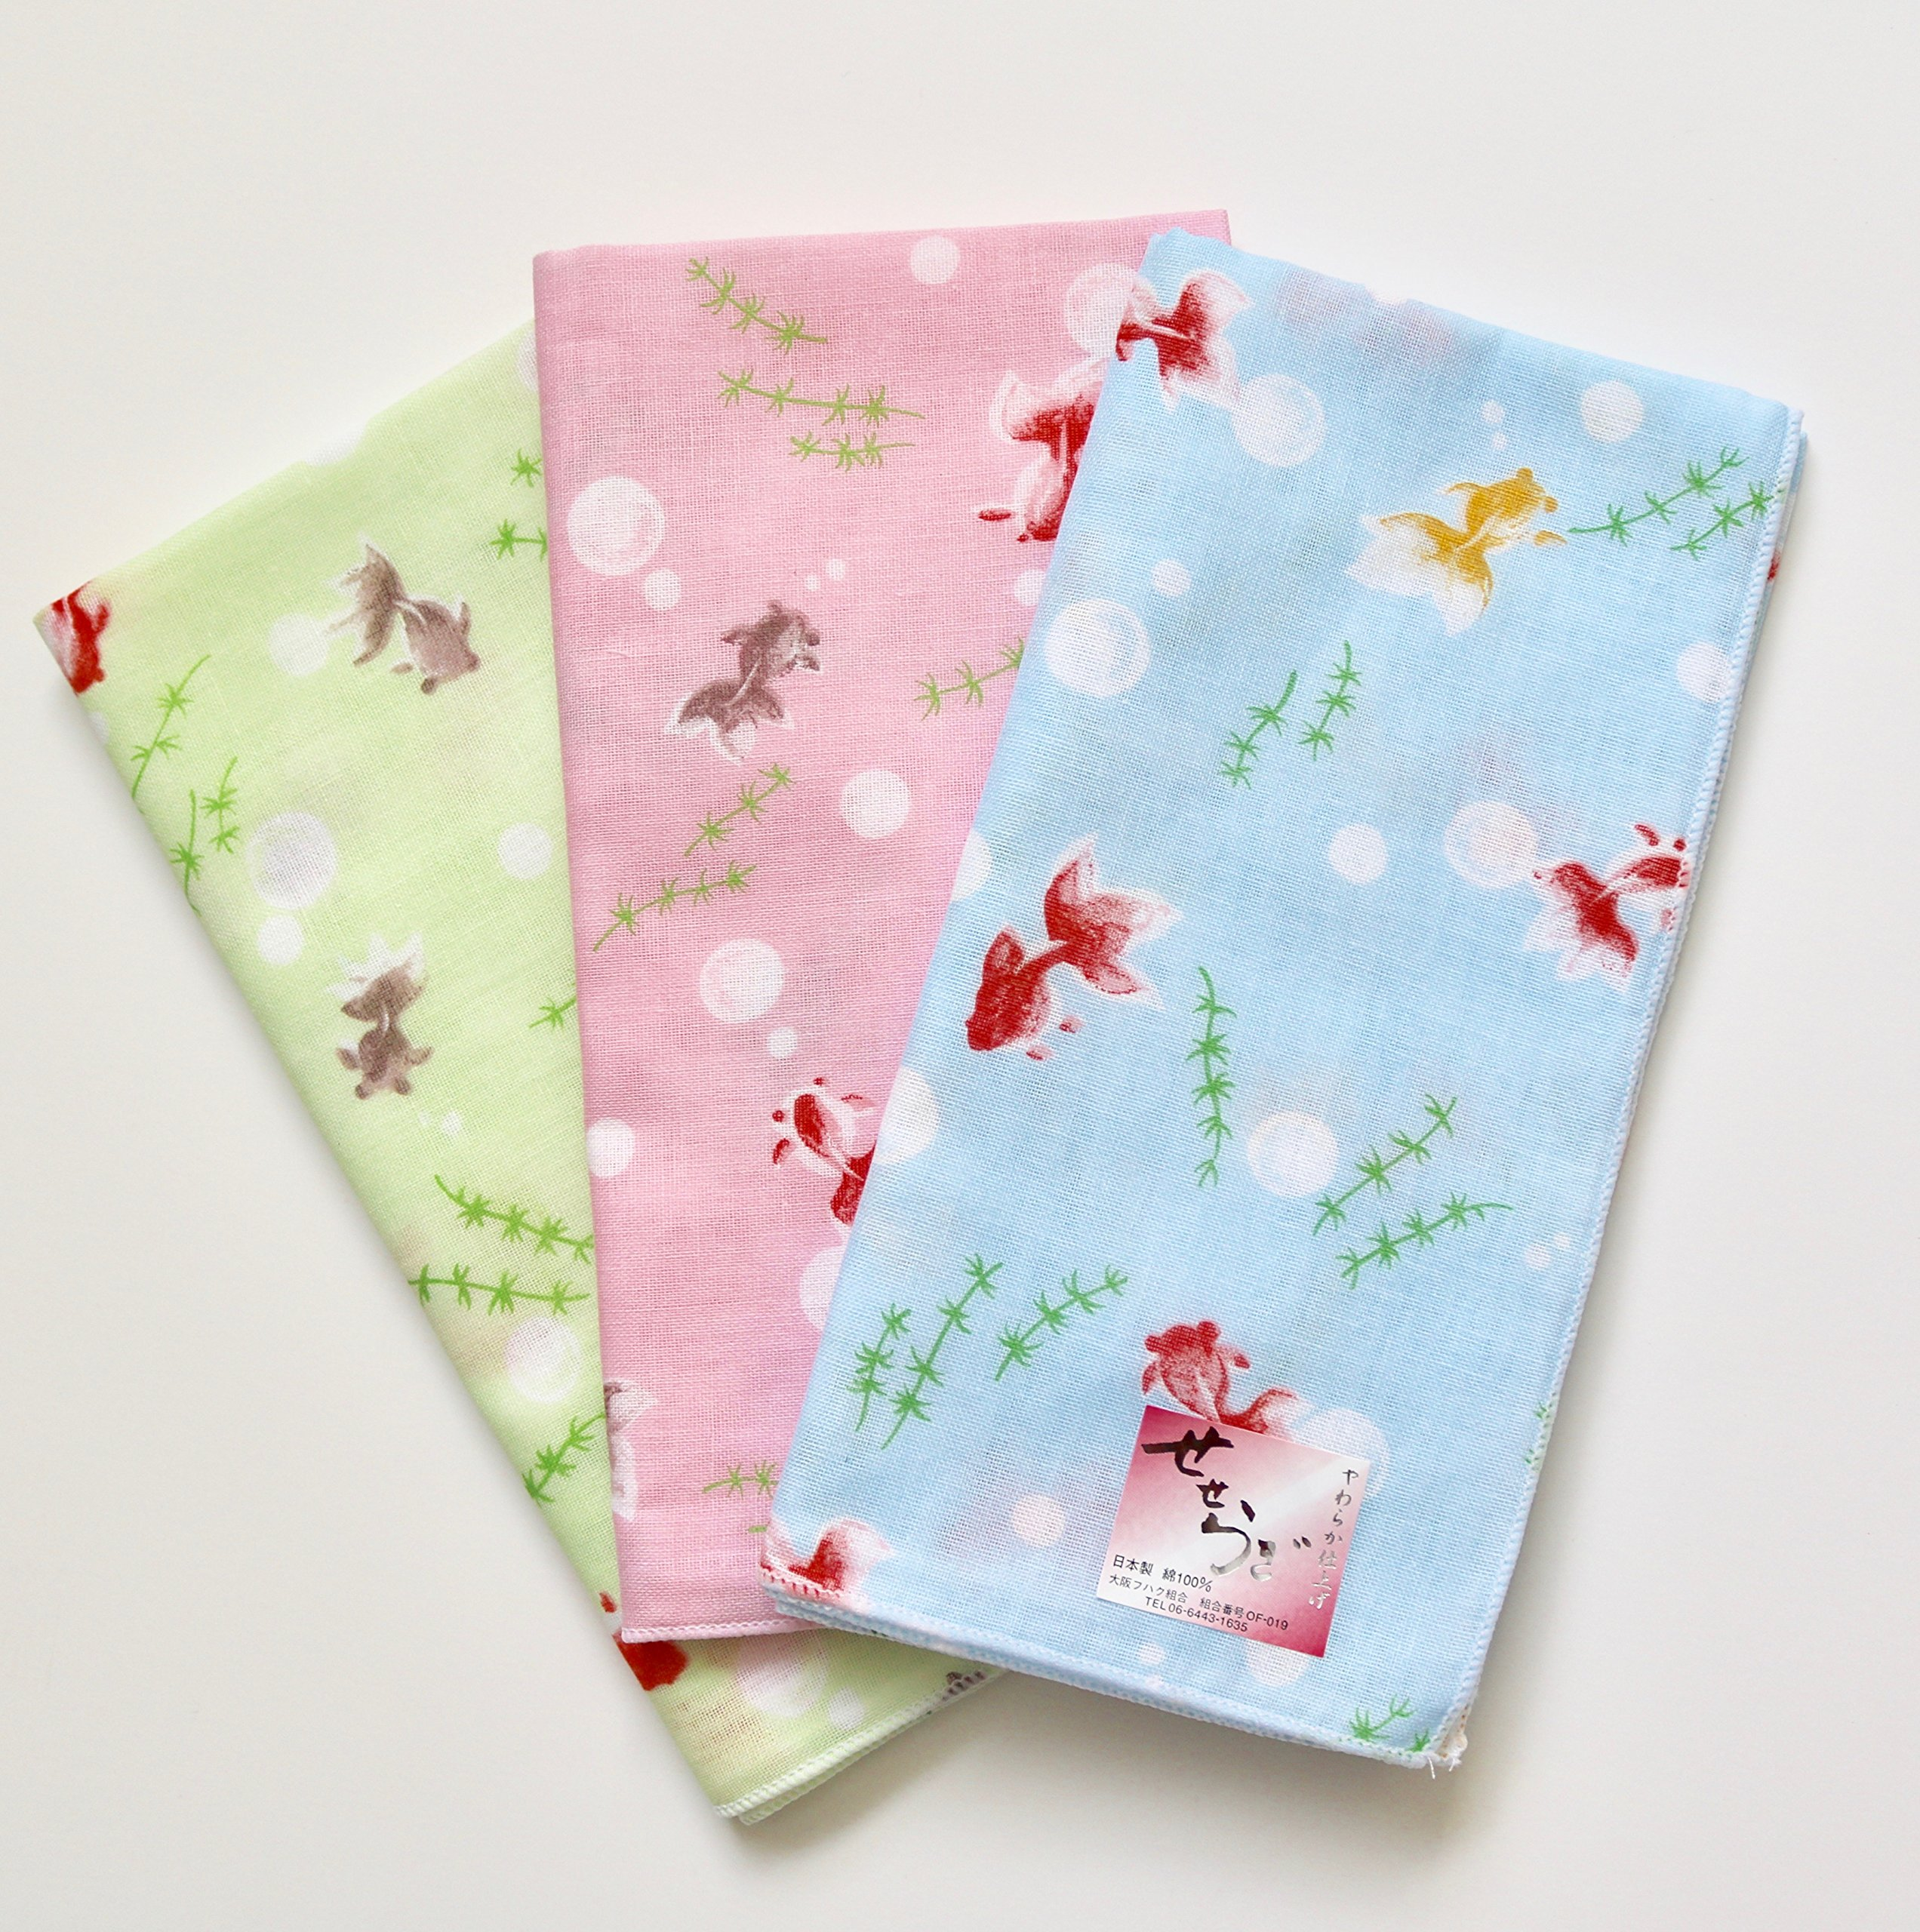 890ab565b4 Get Quotations · IYO YUINOU 3 Set of Beautiful Japanese Gauze Kingyo  Goldfish Handkerchief Cotton 100% (Set